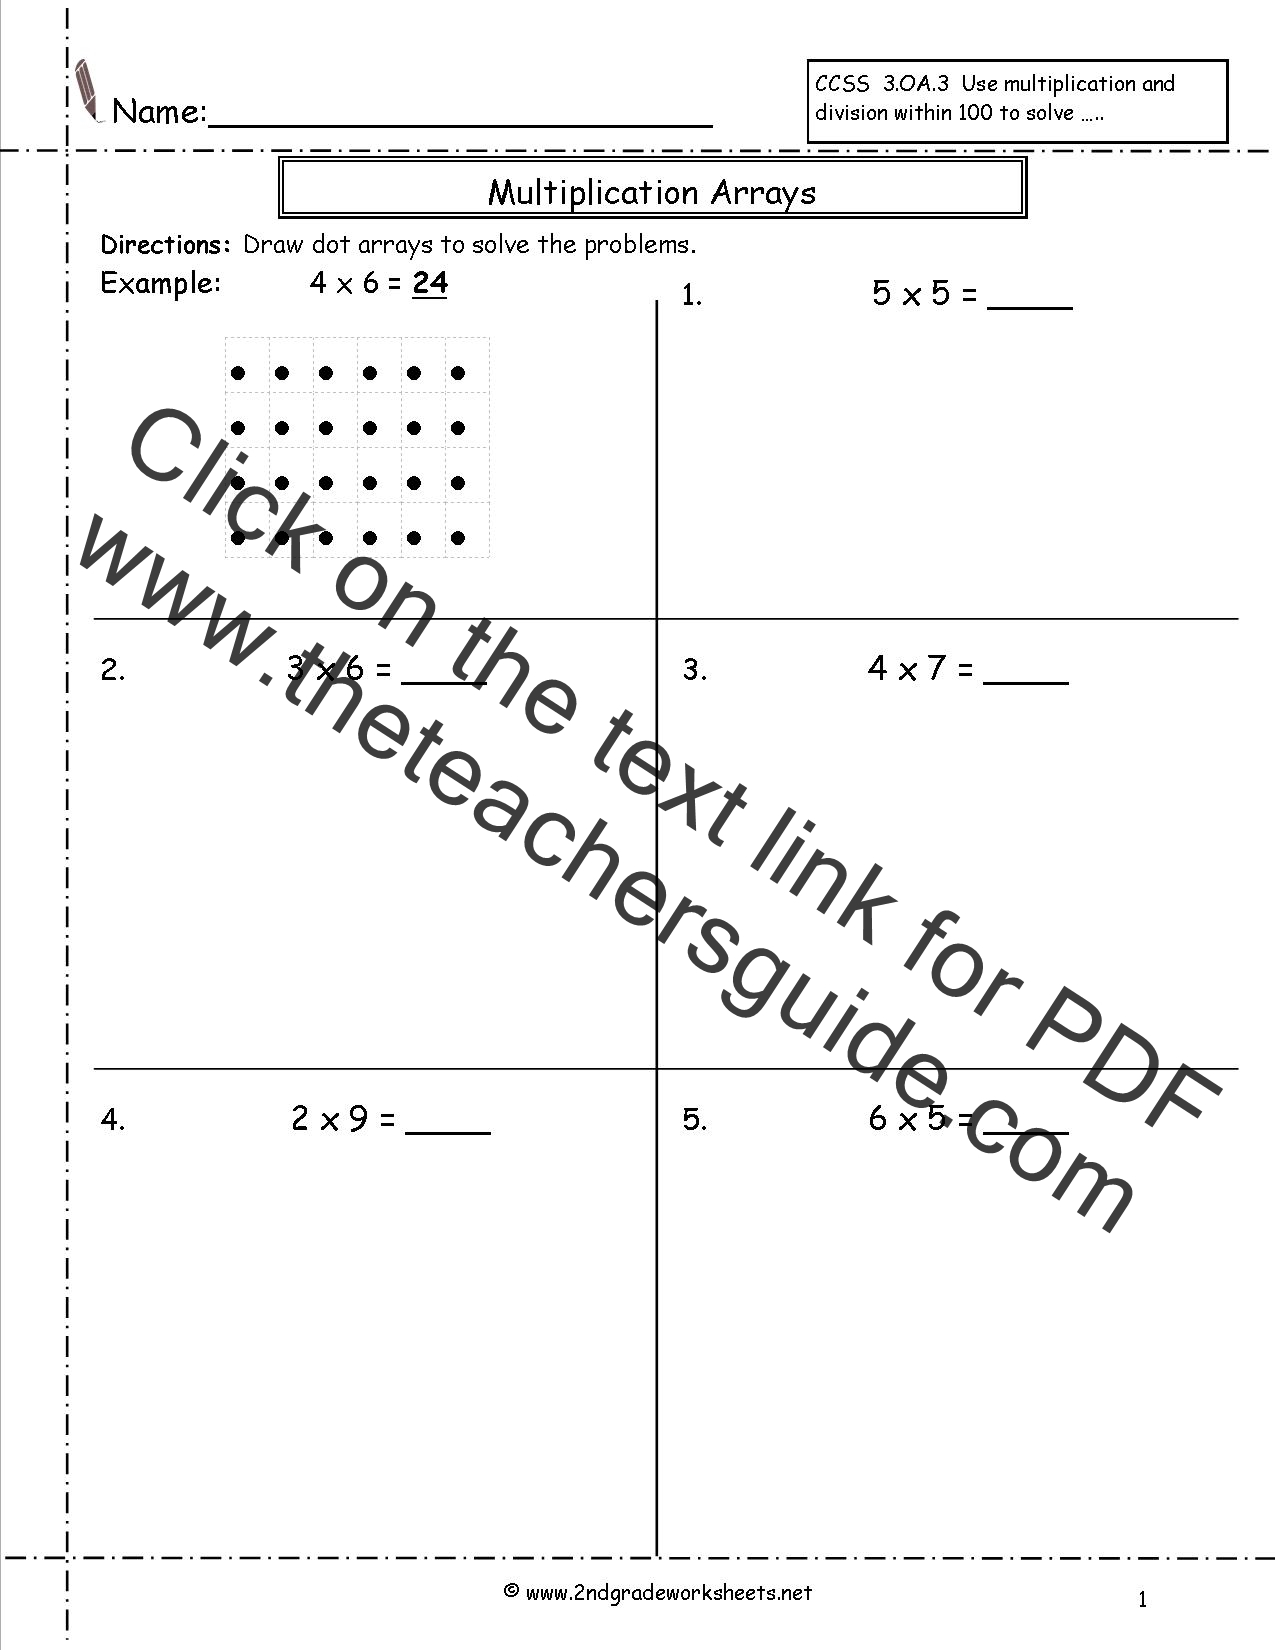 Worksheet Multiplication Worksheets For 2nd Grade multiplication arrays worksheets array worksheets